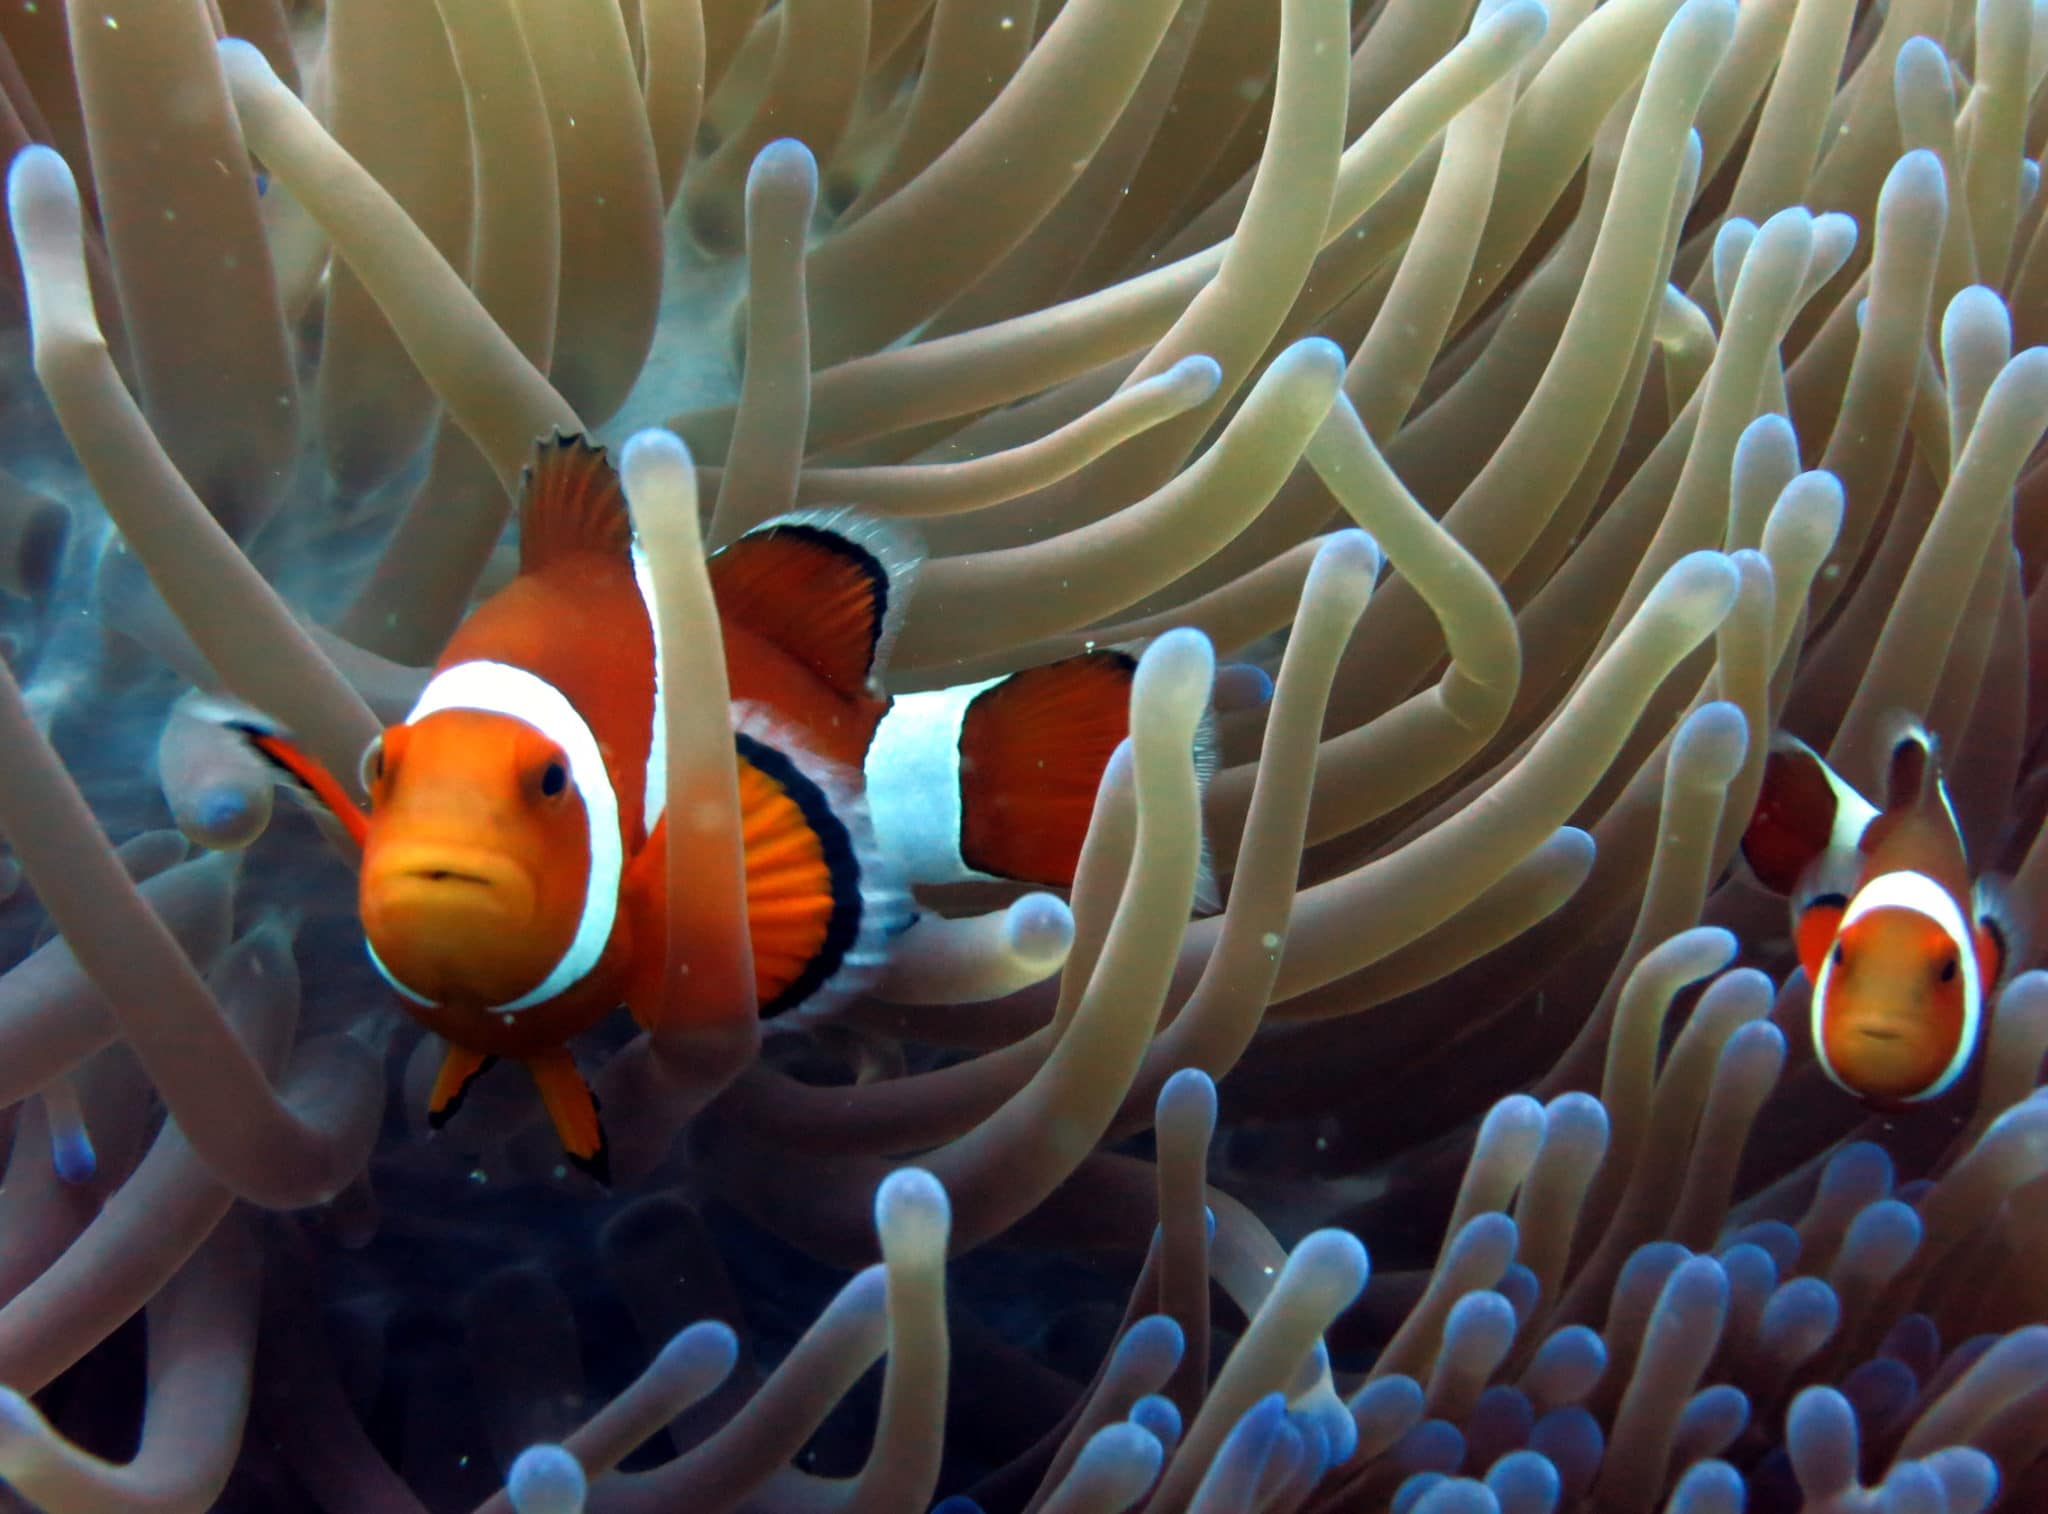 Clown fish Alona reef Panglao Bohol Philippines - edit underwater photos